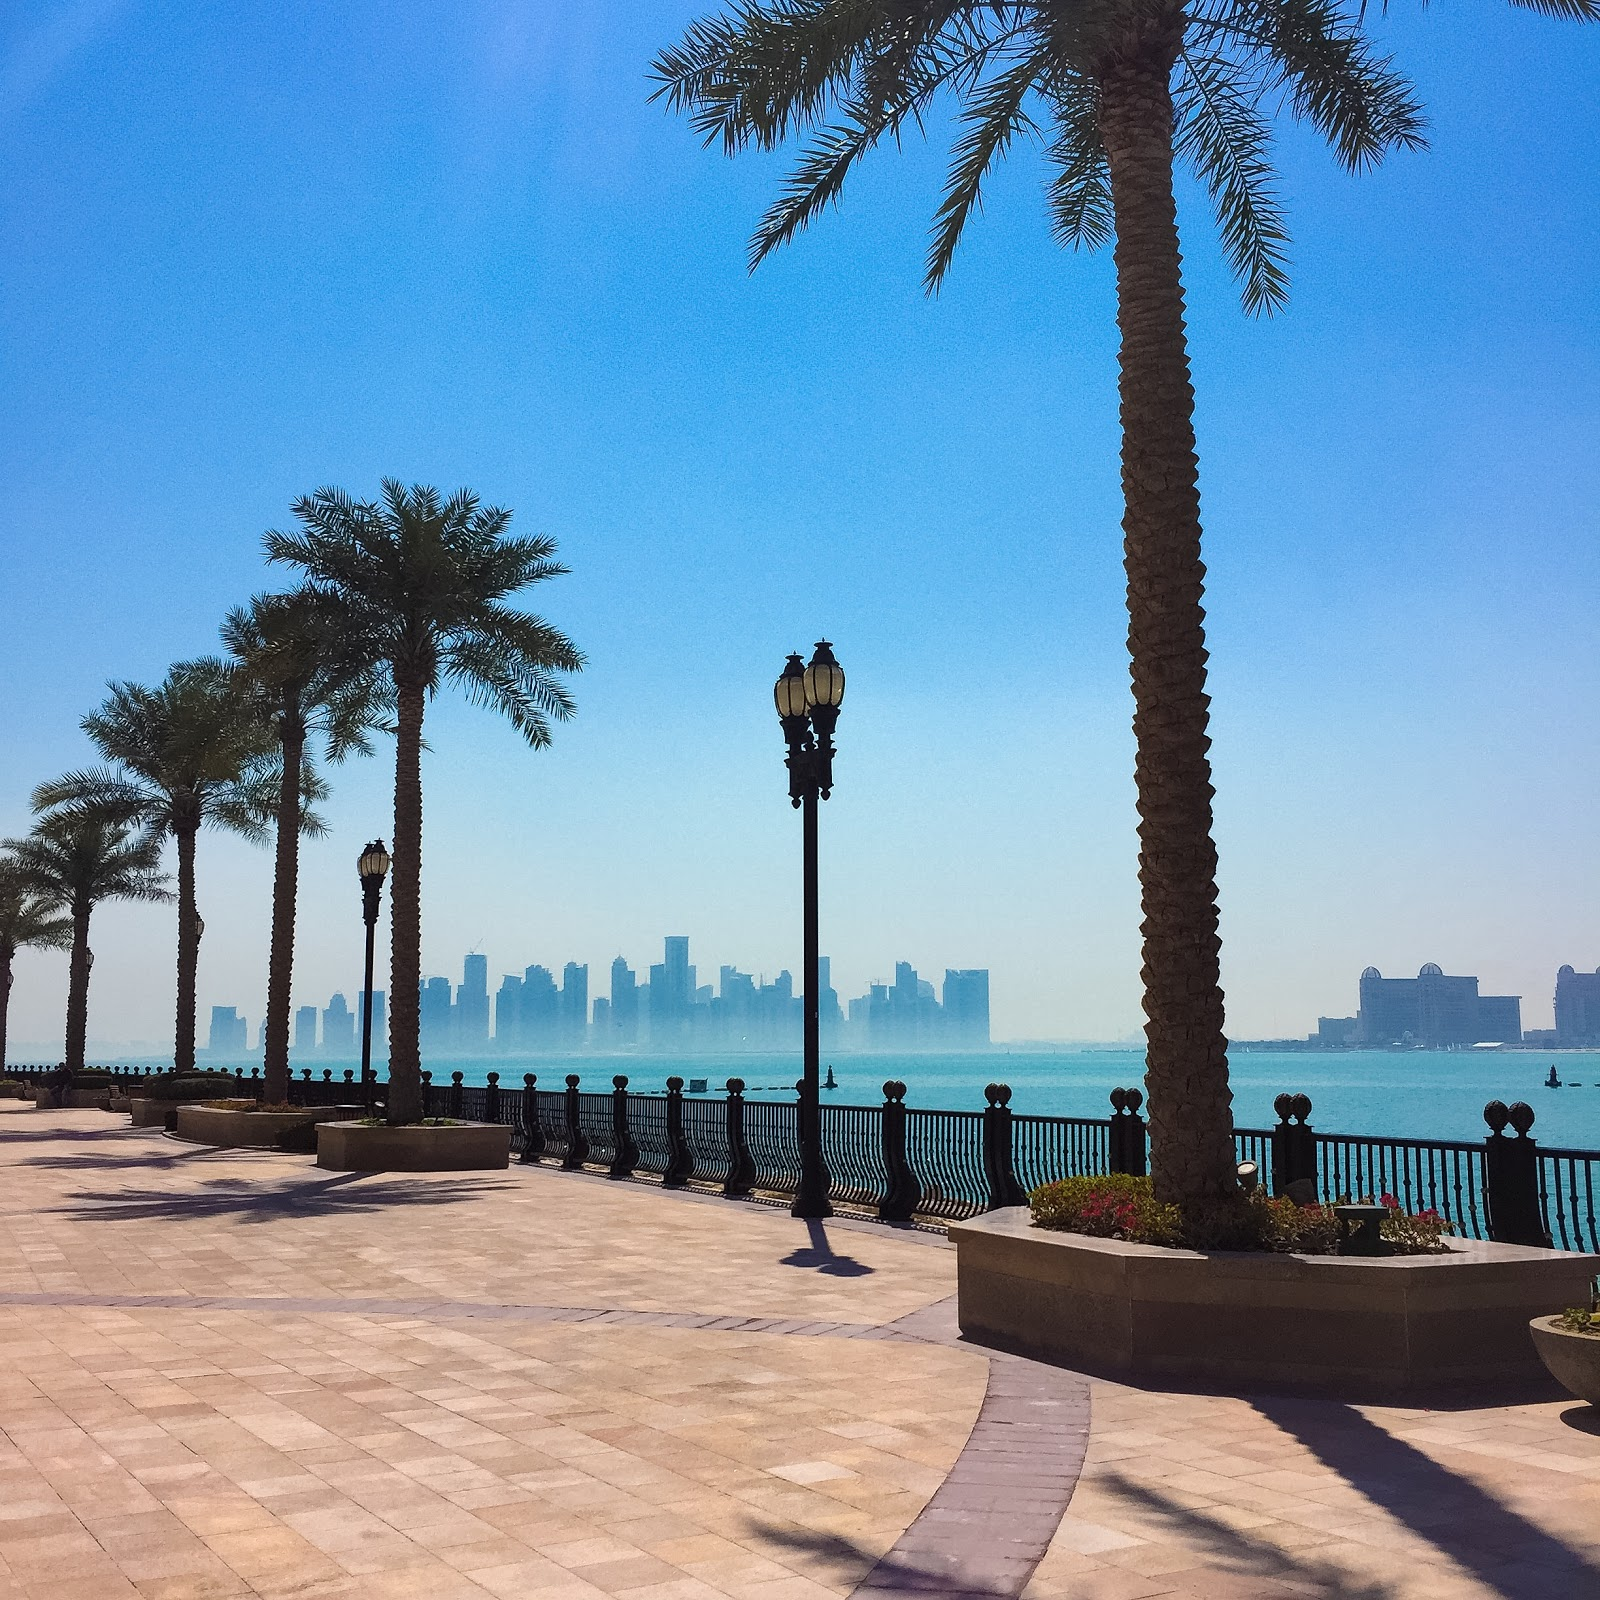 Visiting Qatar: The Pearl Doha